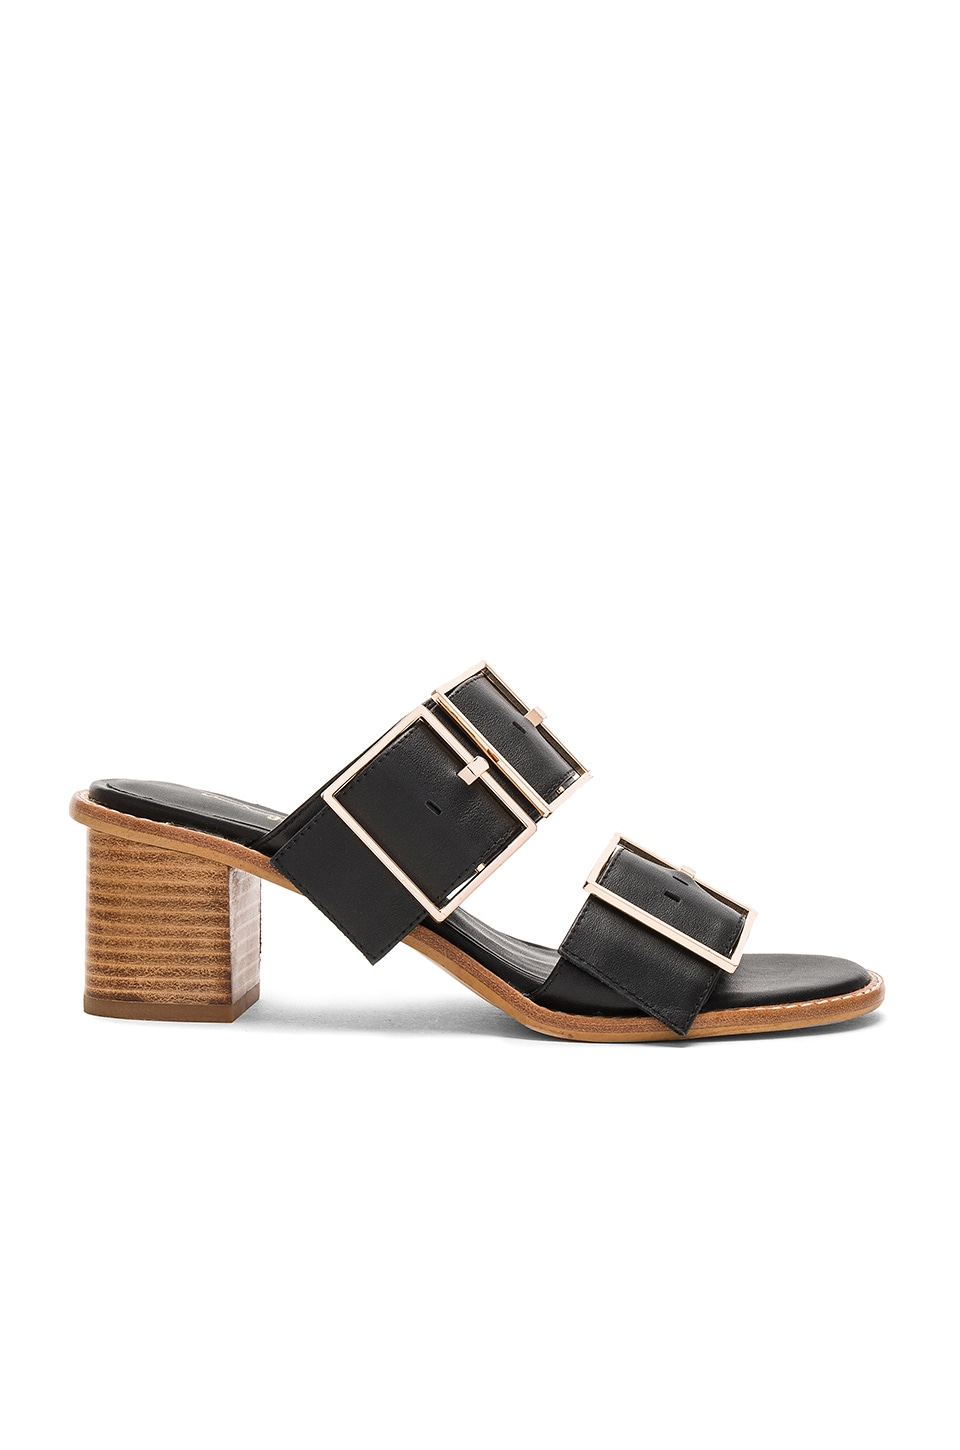 Photo of Tami Heel by Urge shoes